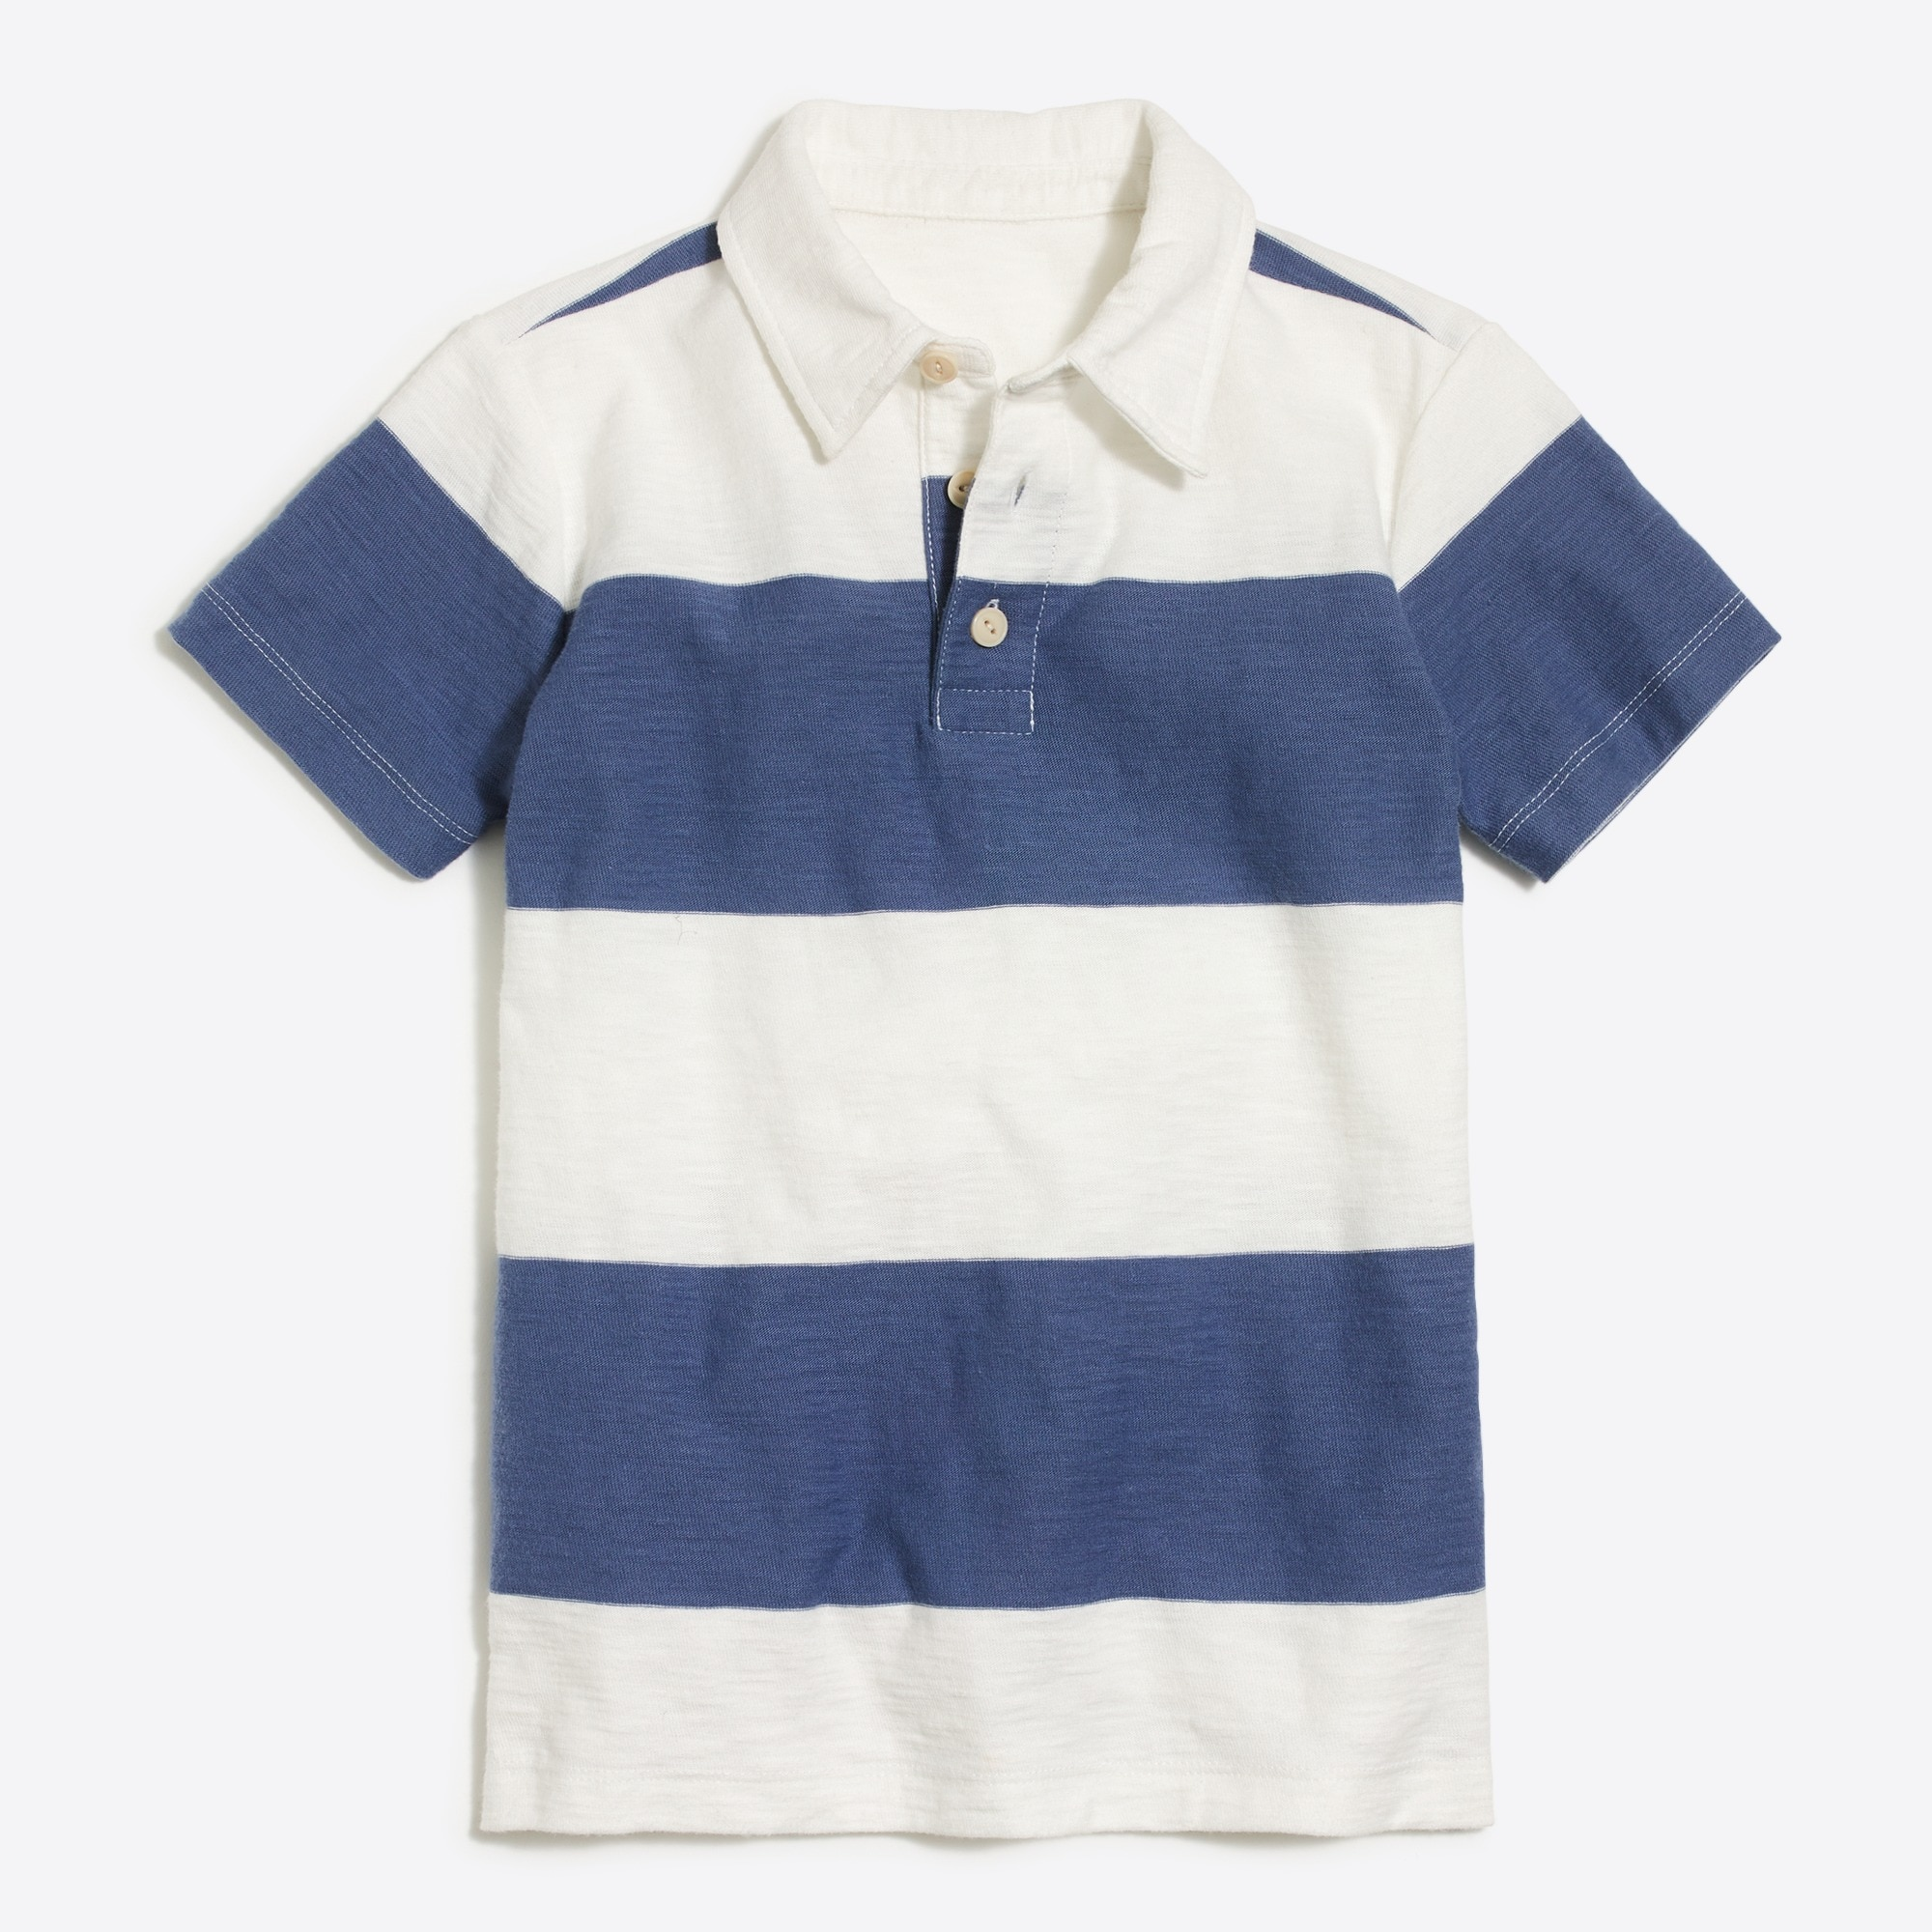 Boys' short-sleeve rugby-stripe polo shirt factoryboys knits & t-shirts c